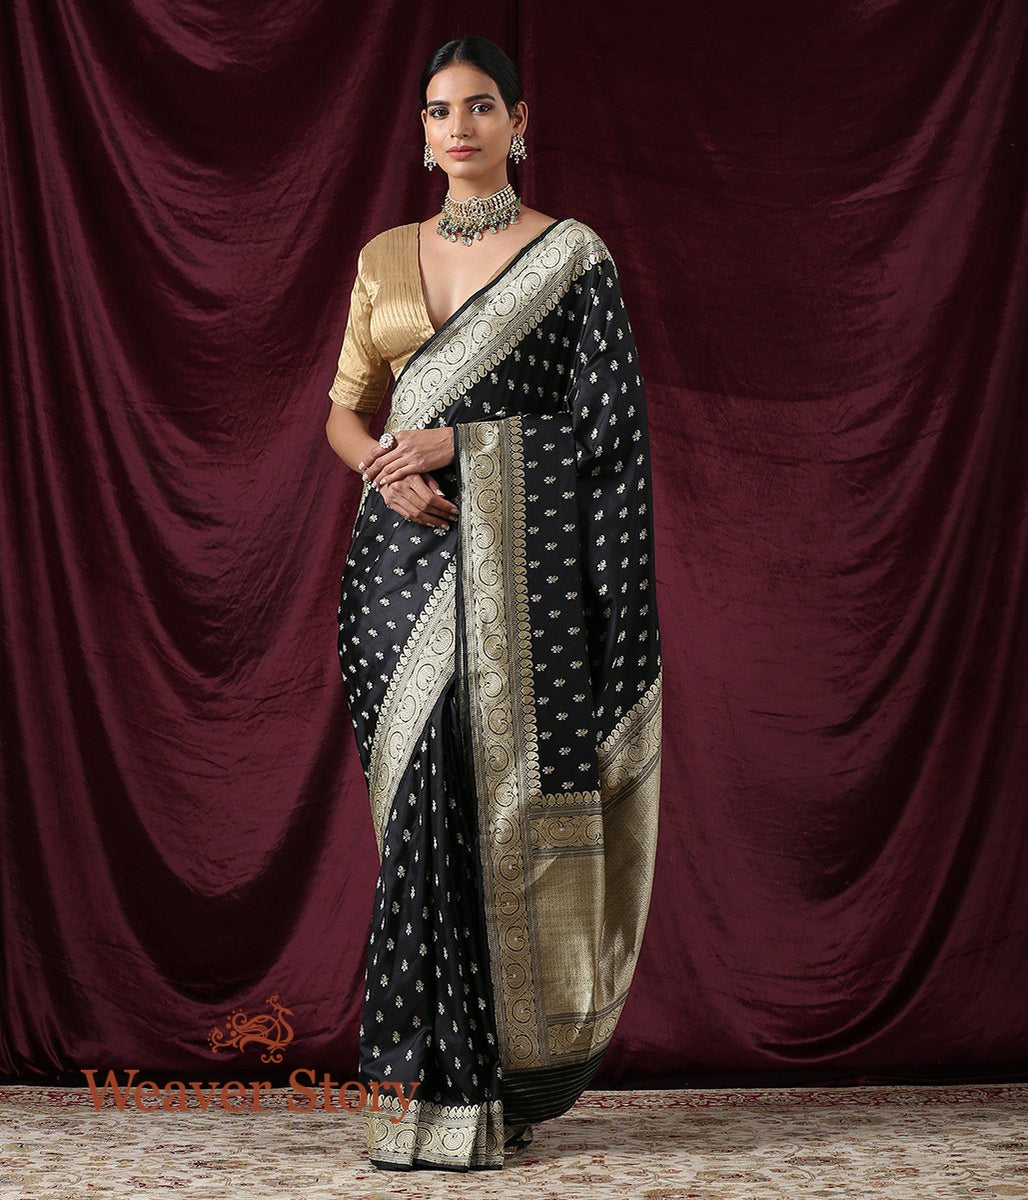 Handwoven Black Katan Silk Saree with Gold Zari Booti and Beldaar Border